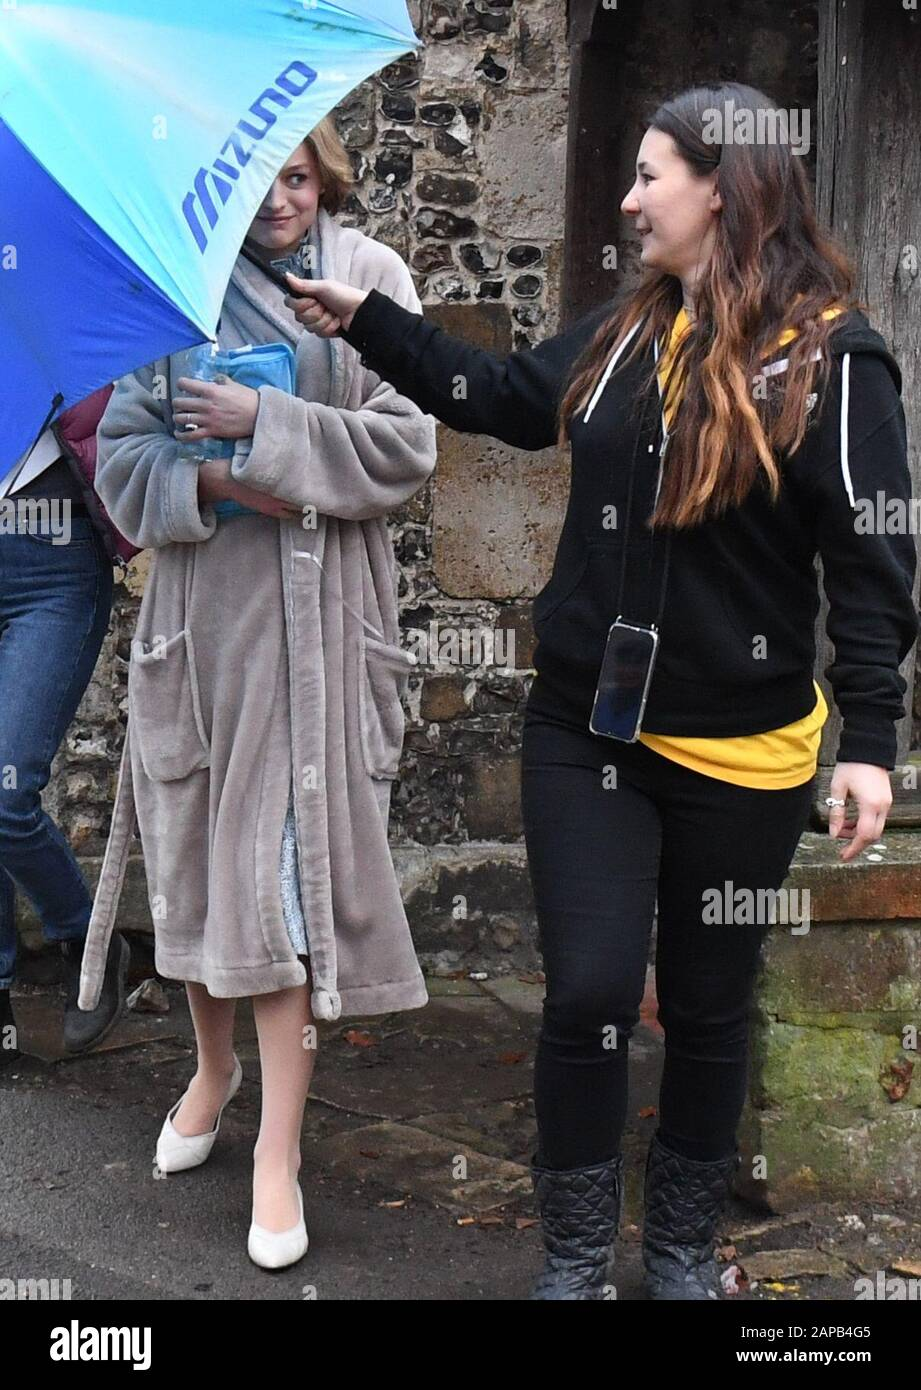 Emma Corrin Who Plays Lady Diana Spencer At Winchester Cathedral As Filming For The Netflix Series The Crown Takes Place Stock Photo Alamy